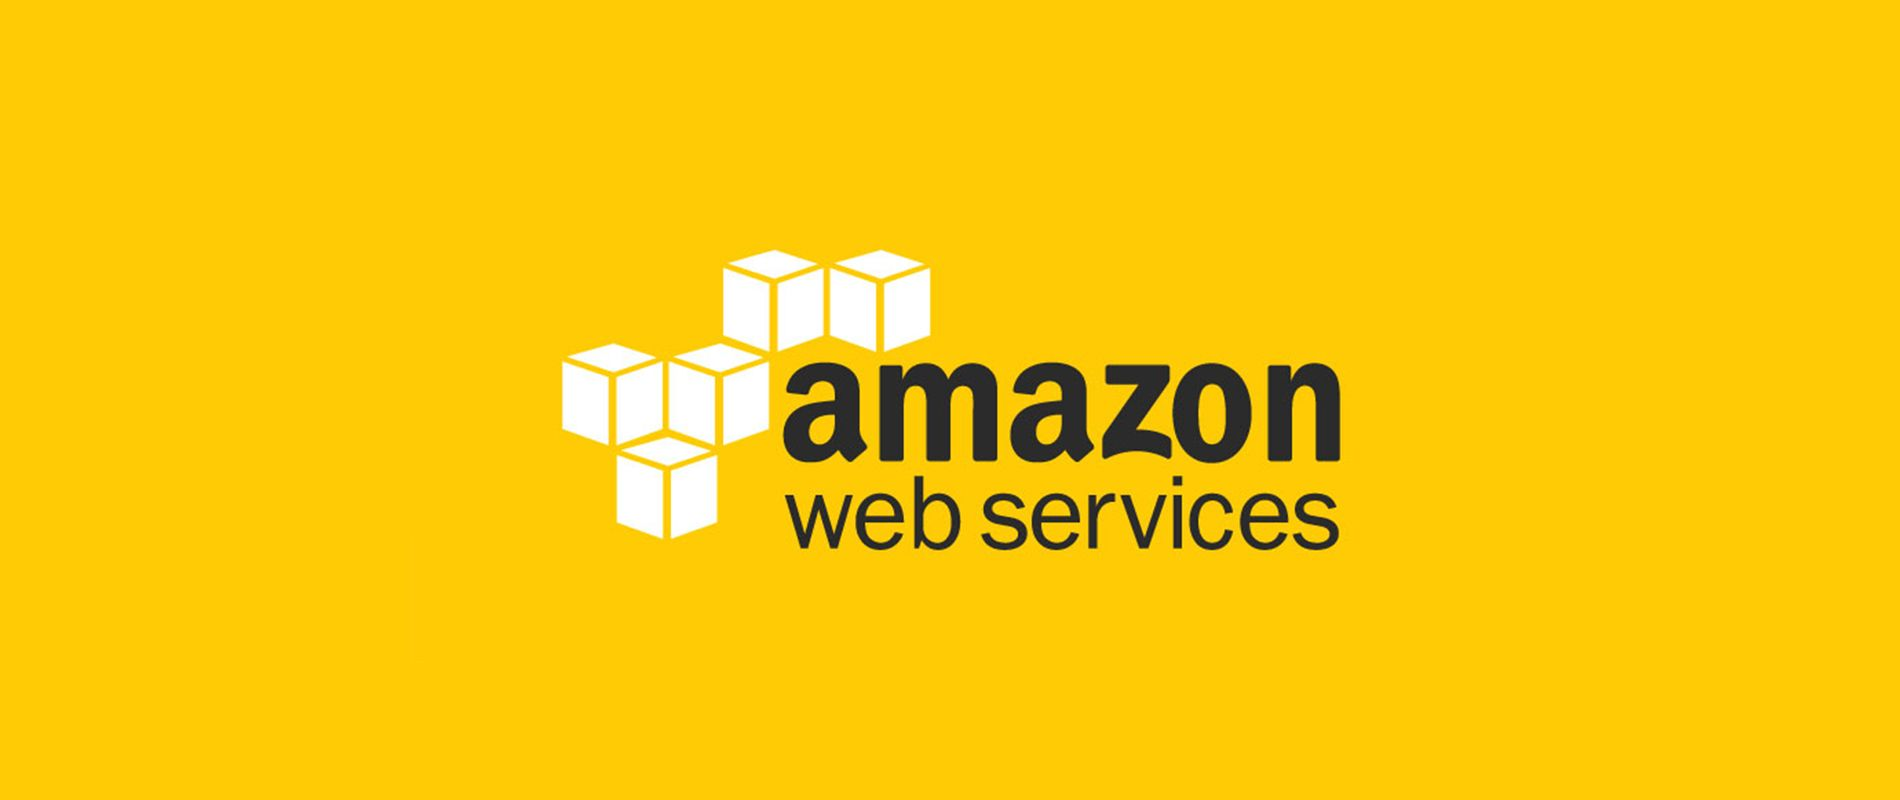 "ill Get you a $50 Amazon Web Service (AWS) Credits for $10 """" LIMITED """""